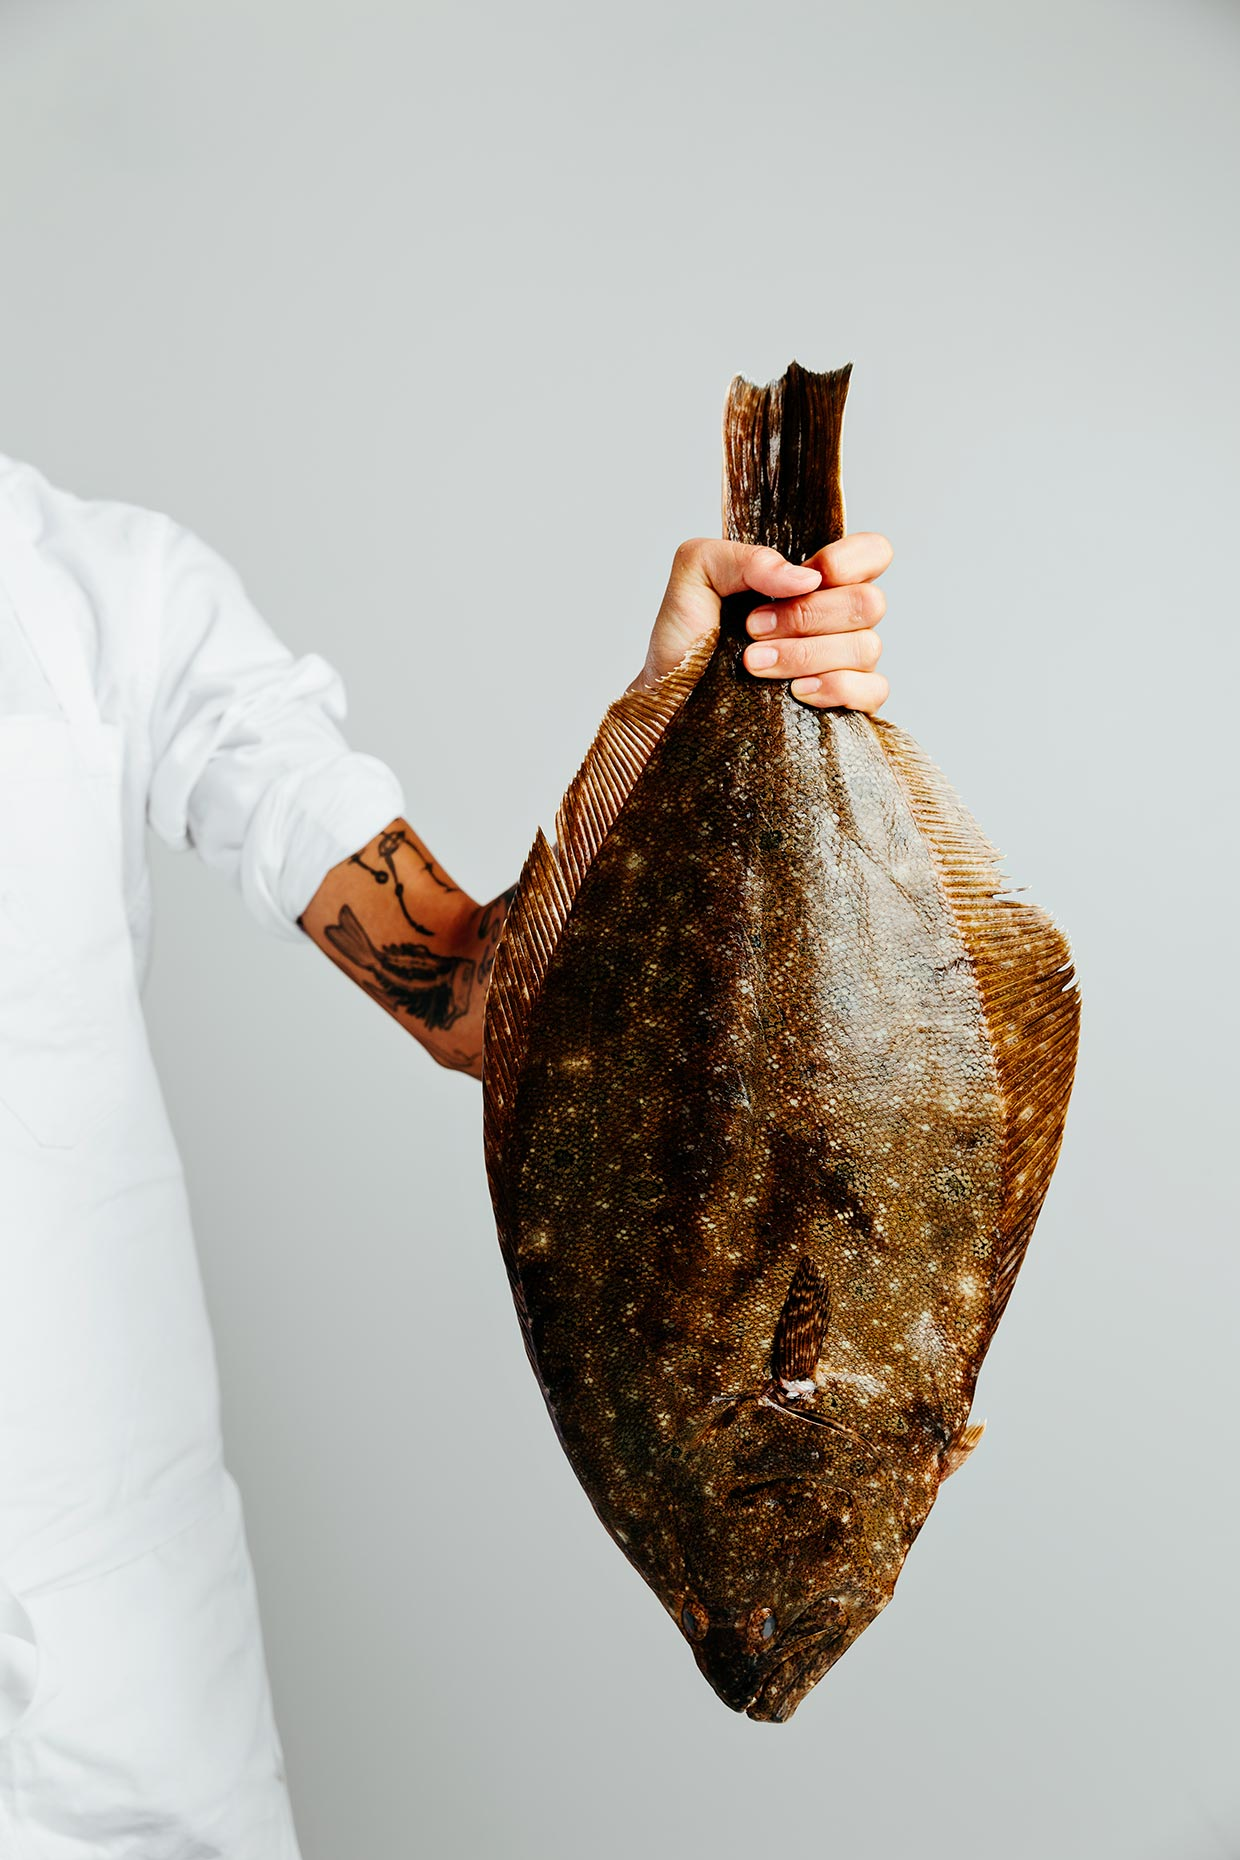 Fluke photographed for Kristen Kish Cooking